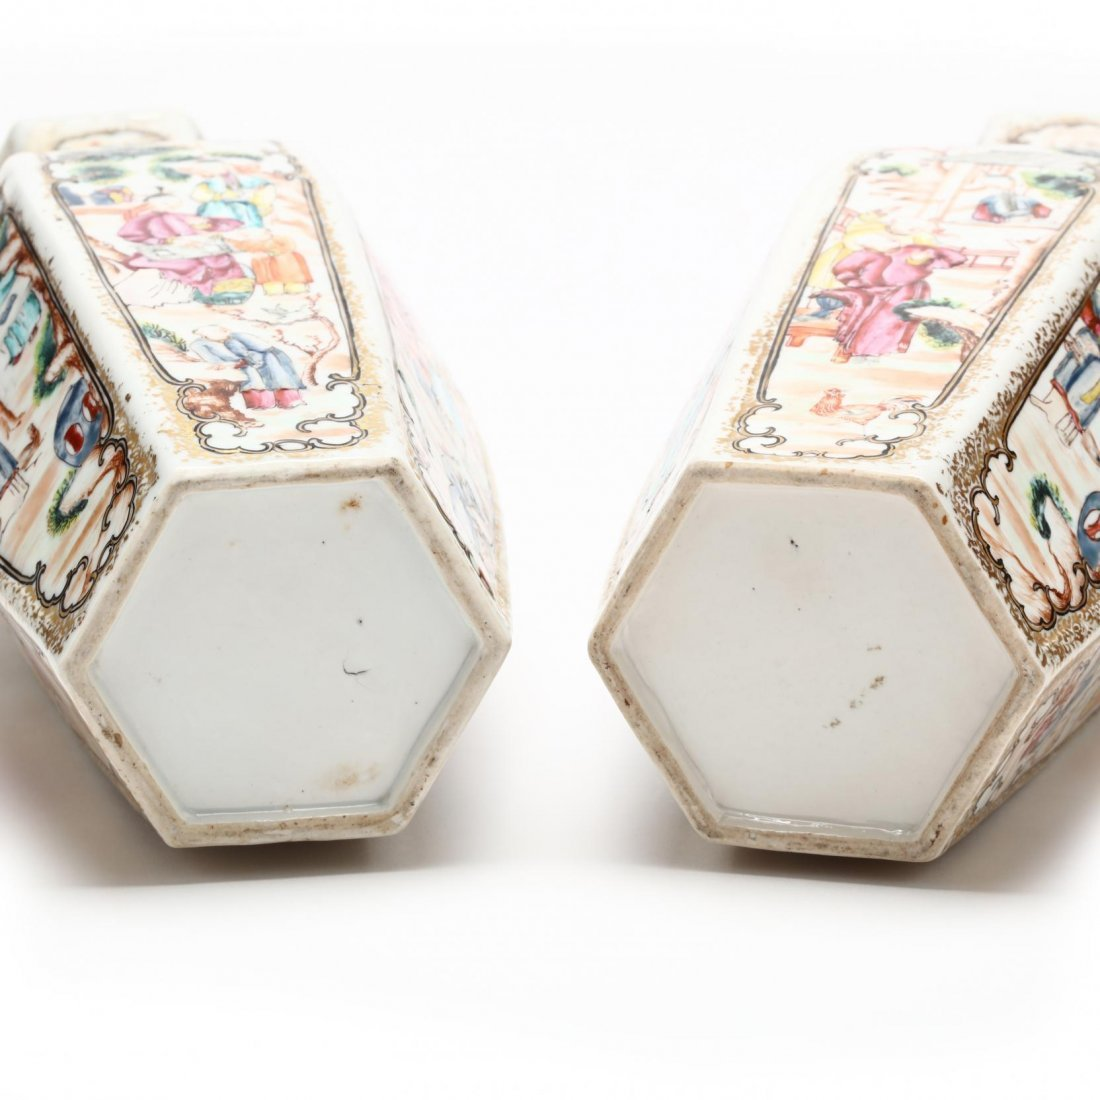 Pair of Chinese Export Vases - 5